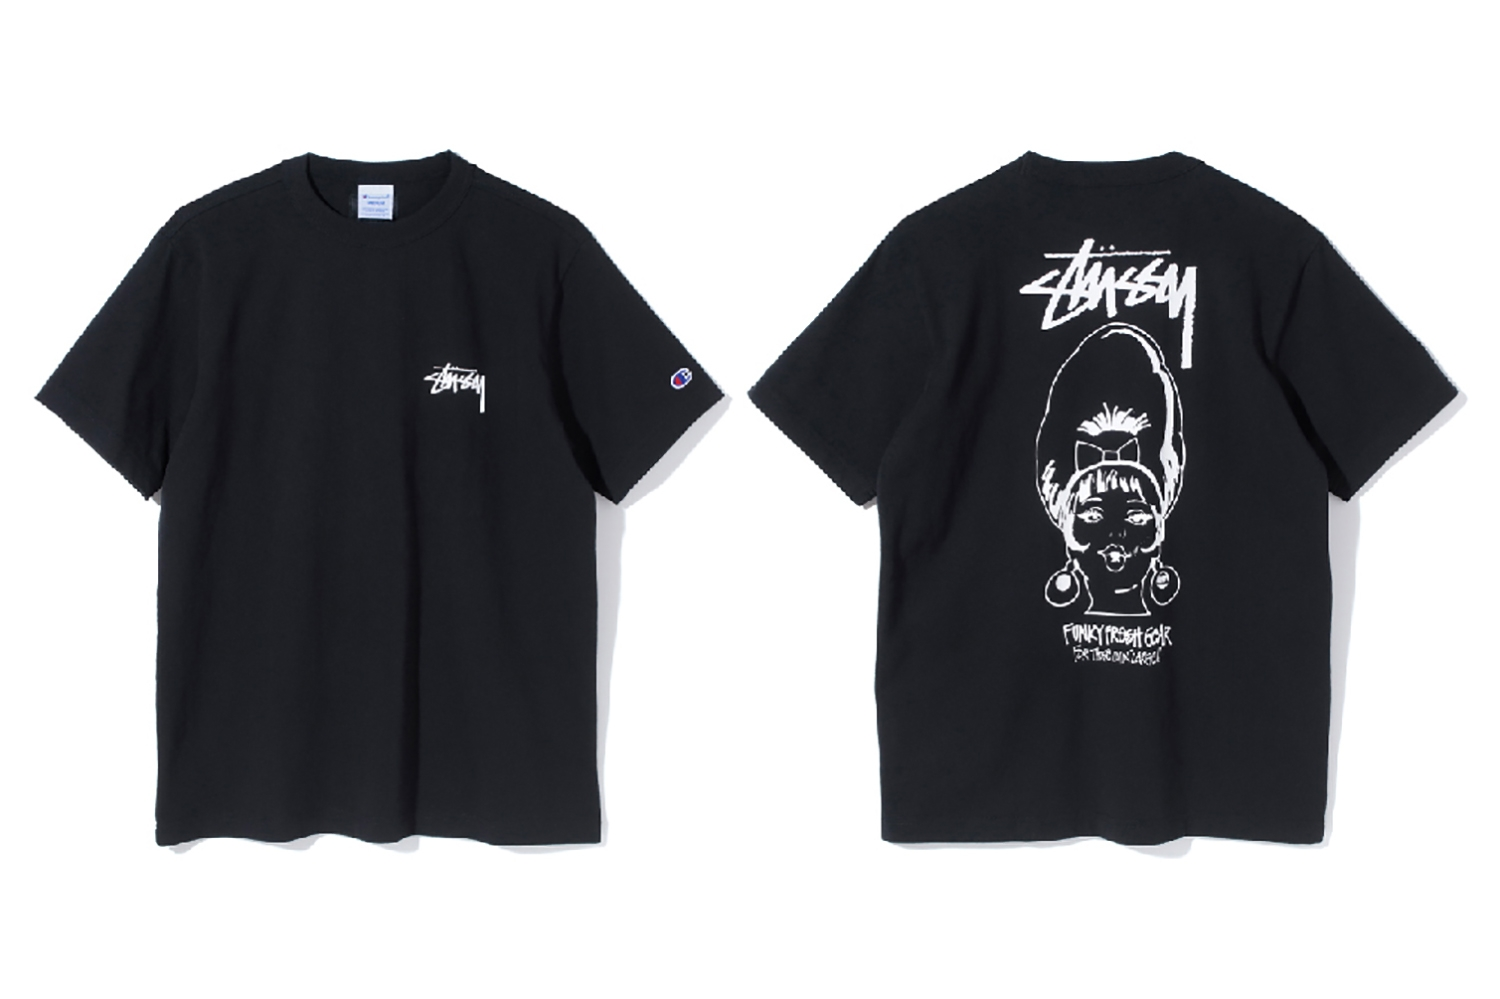 c259e049396 Stüssy x Champion Launch a New Serie of T-Shirts for Spring Summer 2017